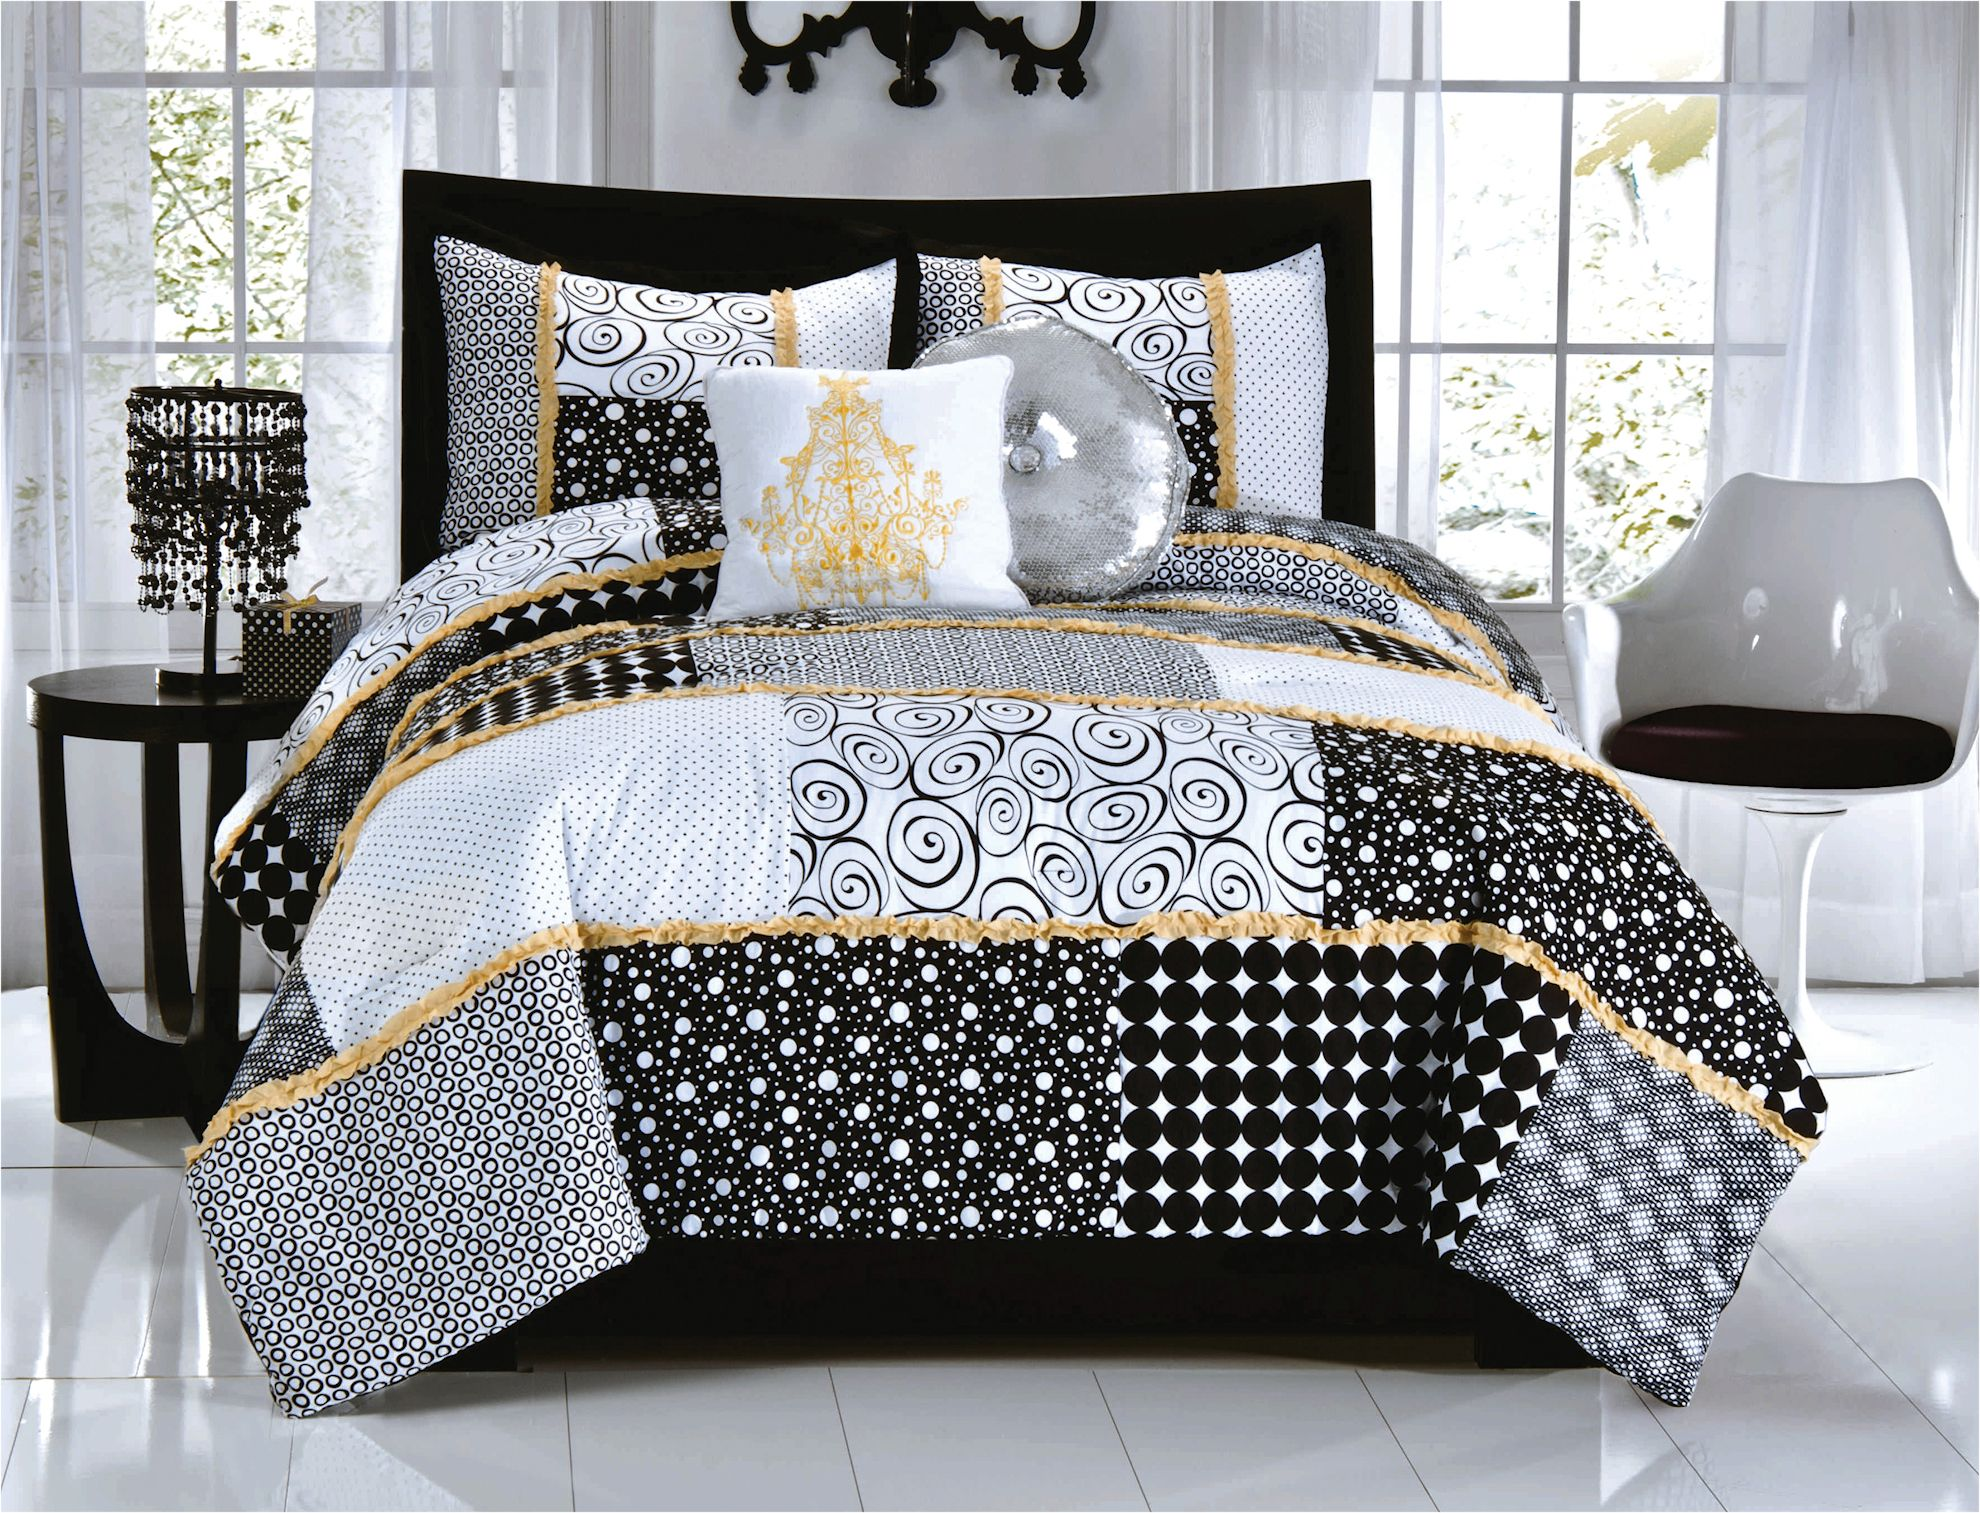 Elegant Black White Dot & Scroll Teen Girl Bedding Twin Full Queen